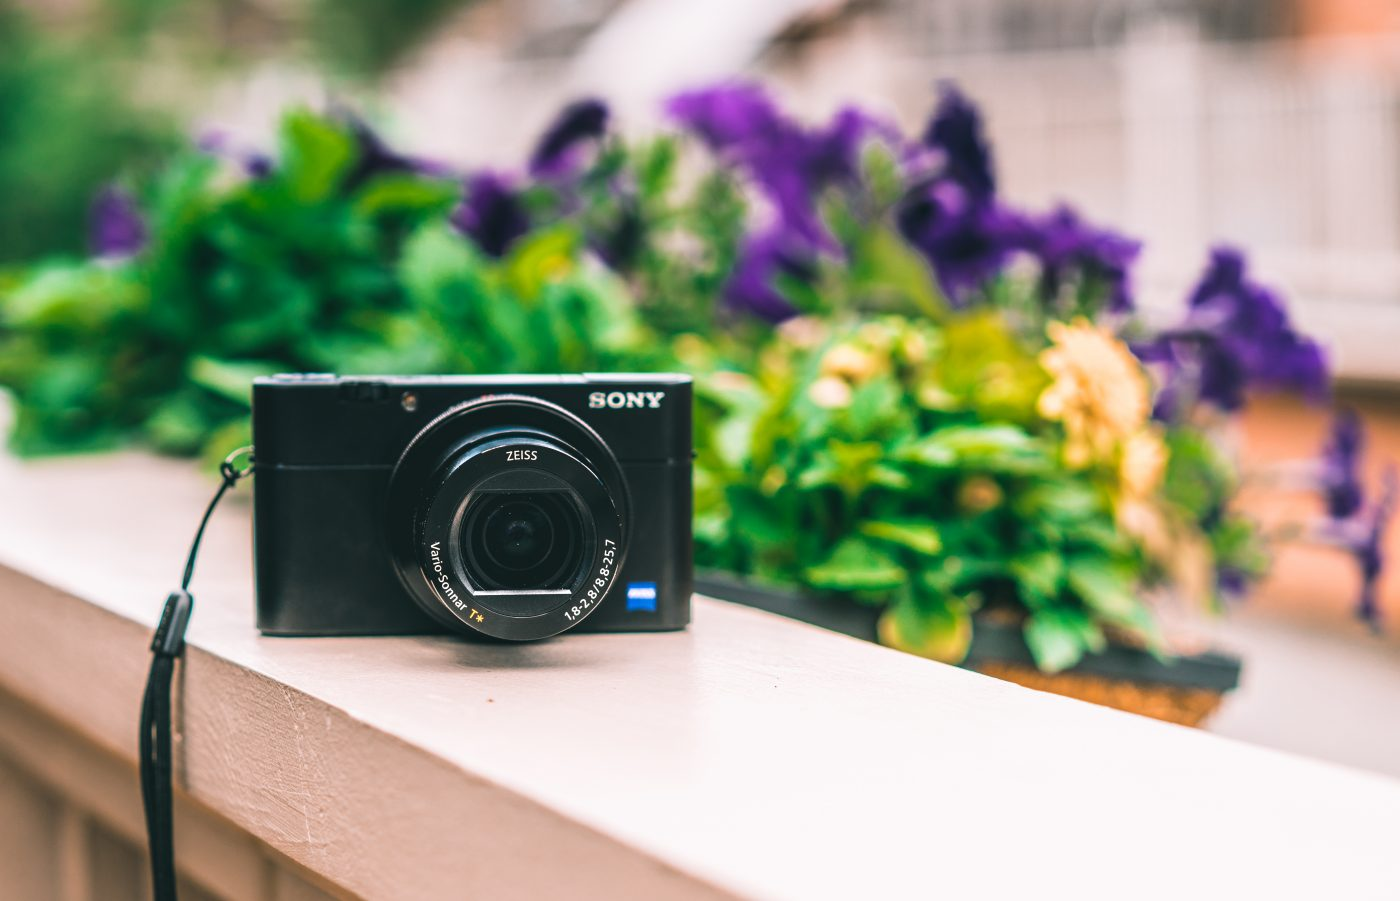 Sony RX 100 V - our favourite compact travel camera